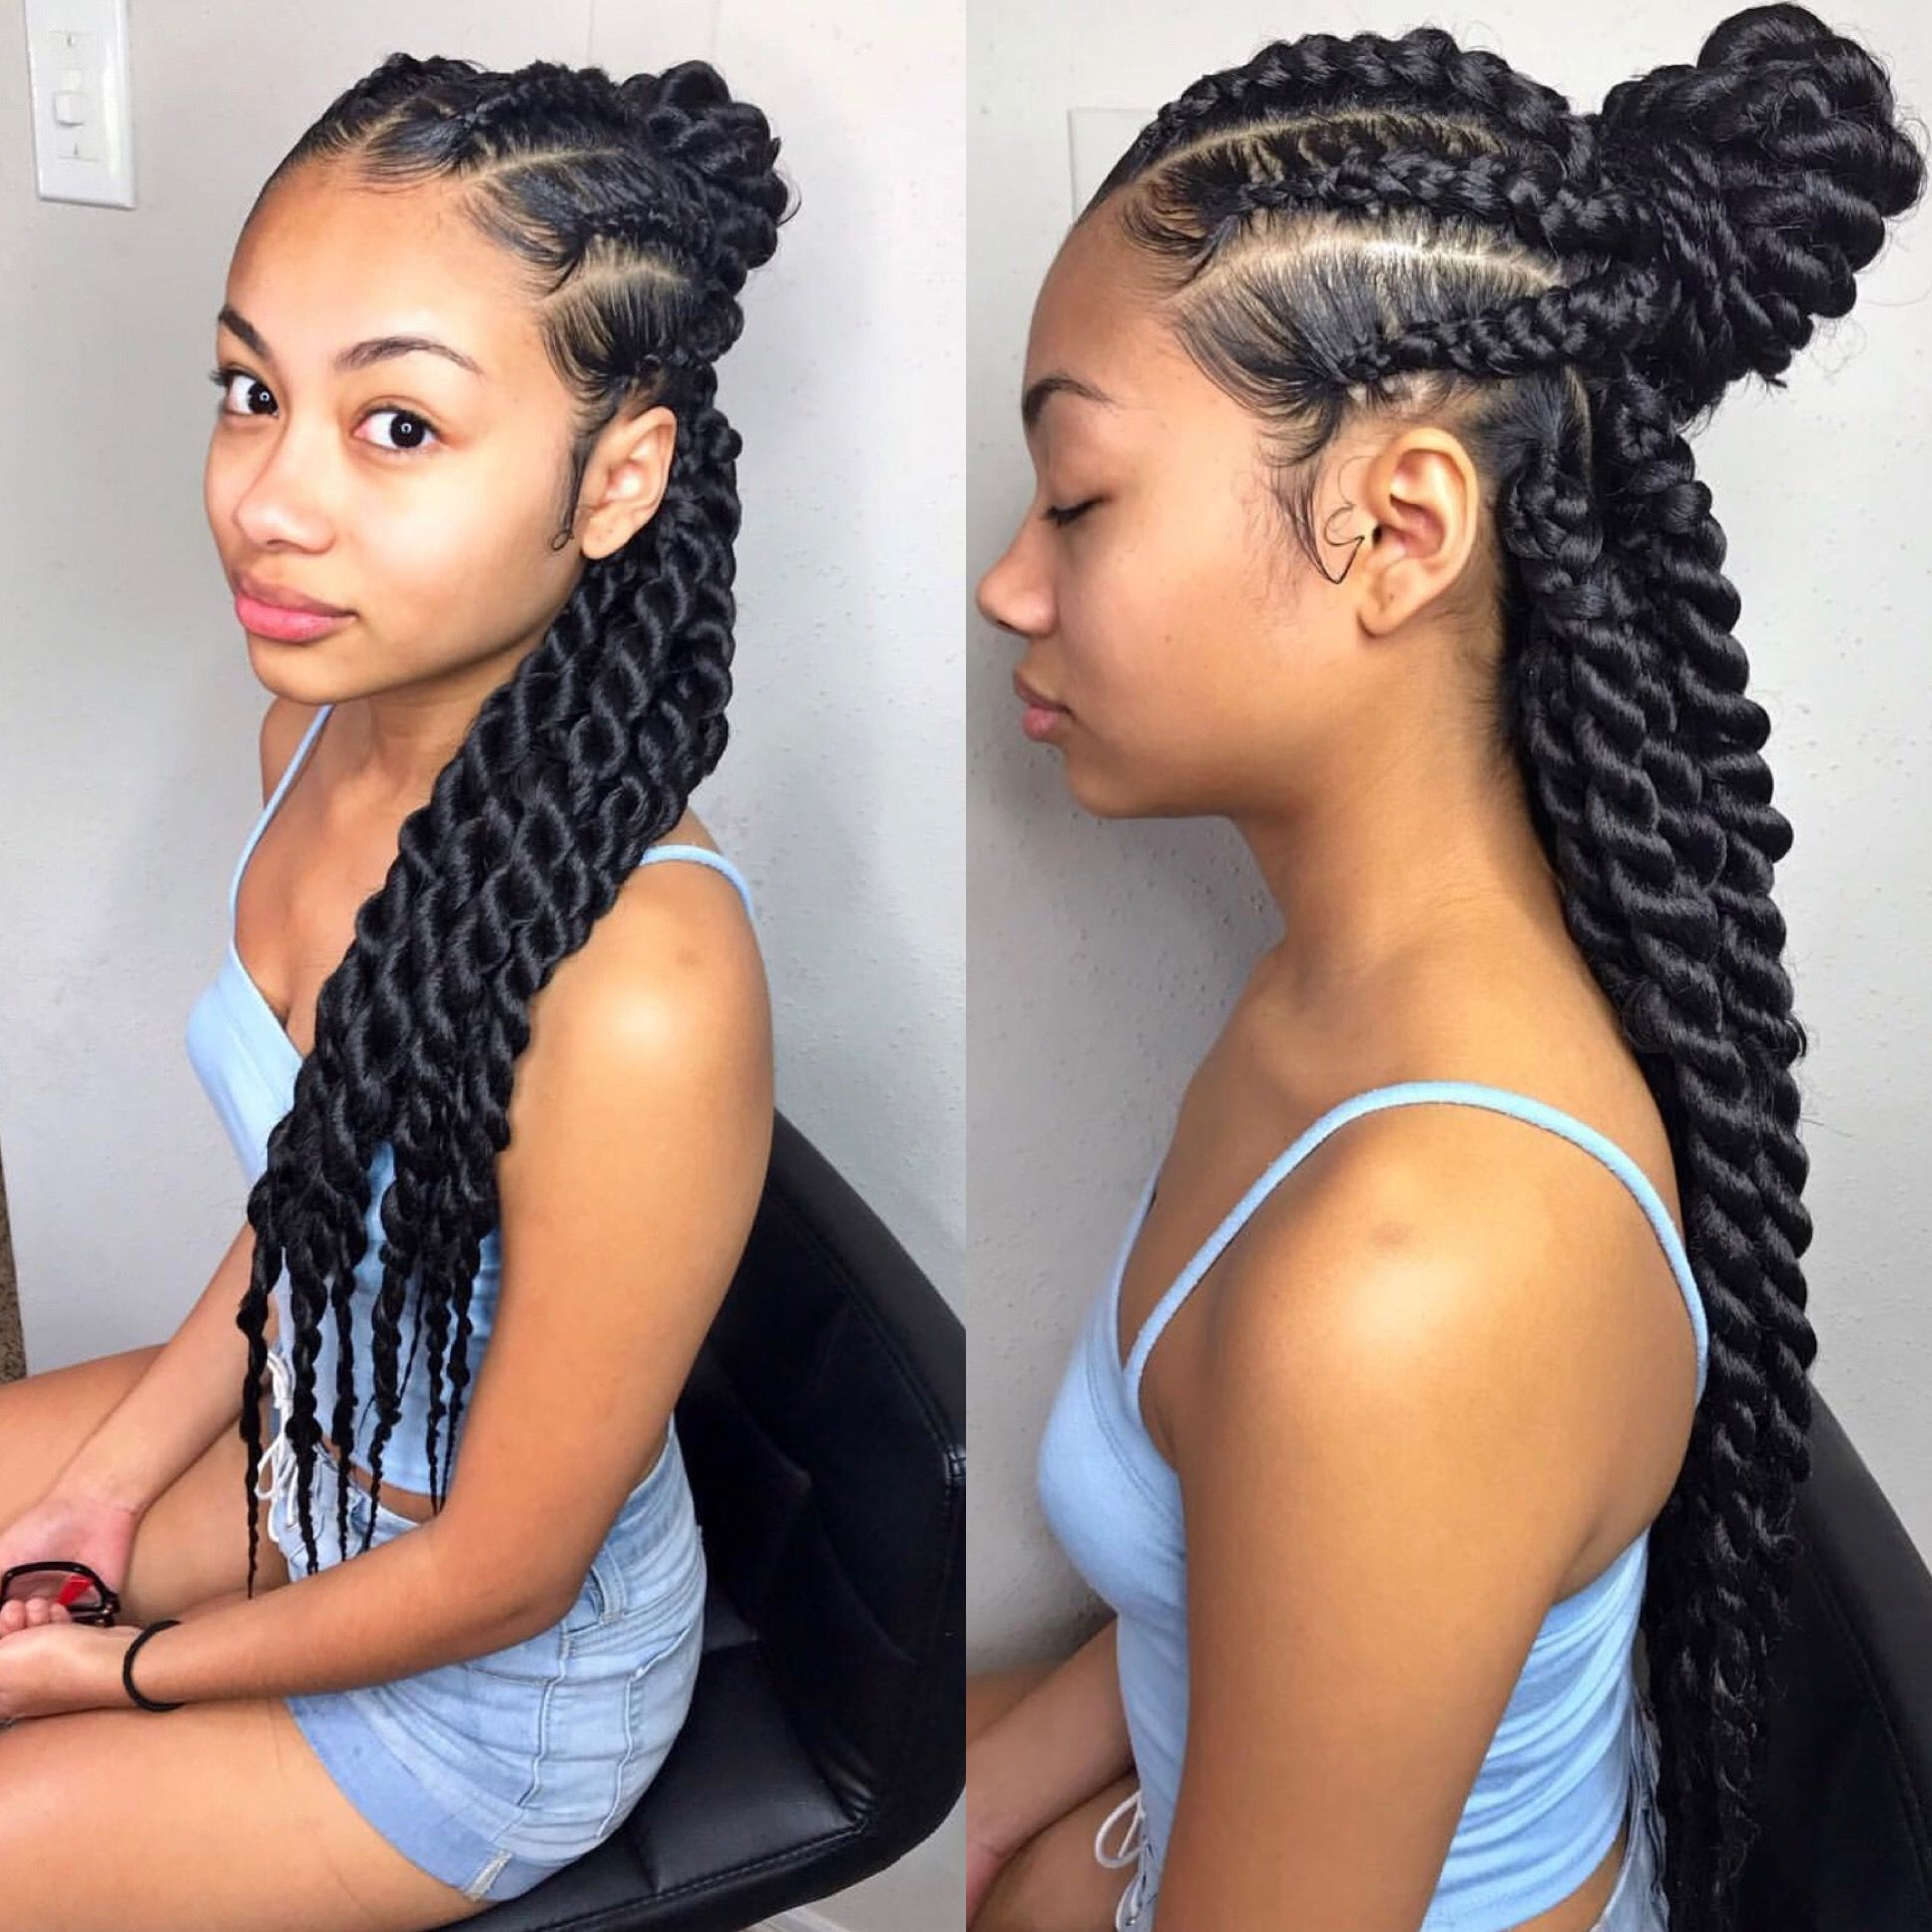 twists trapprinzess